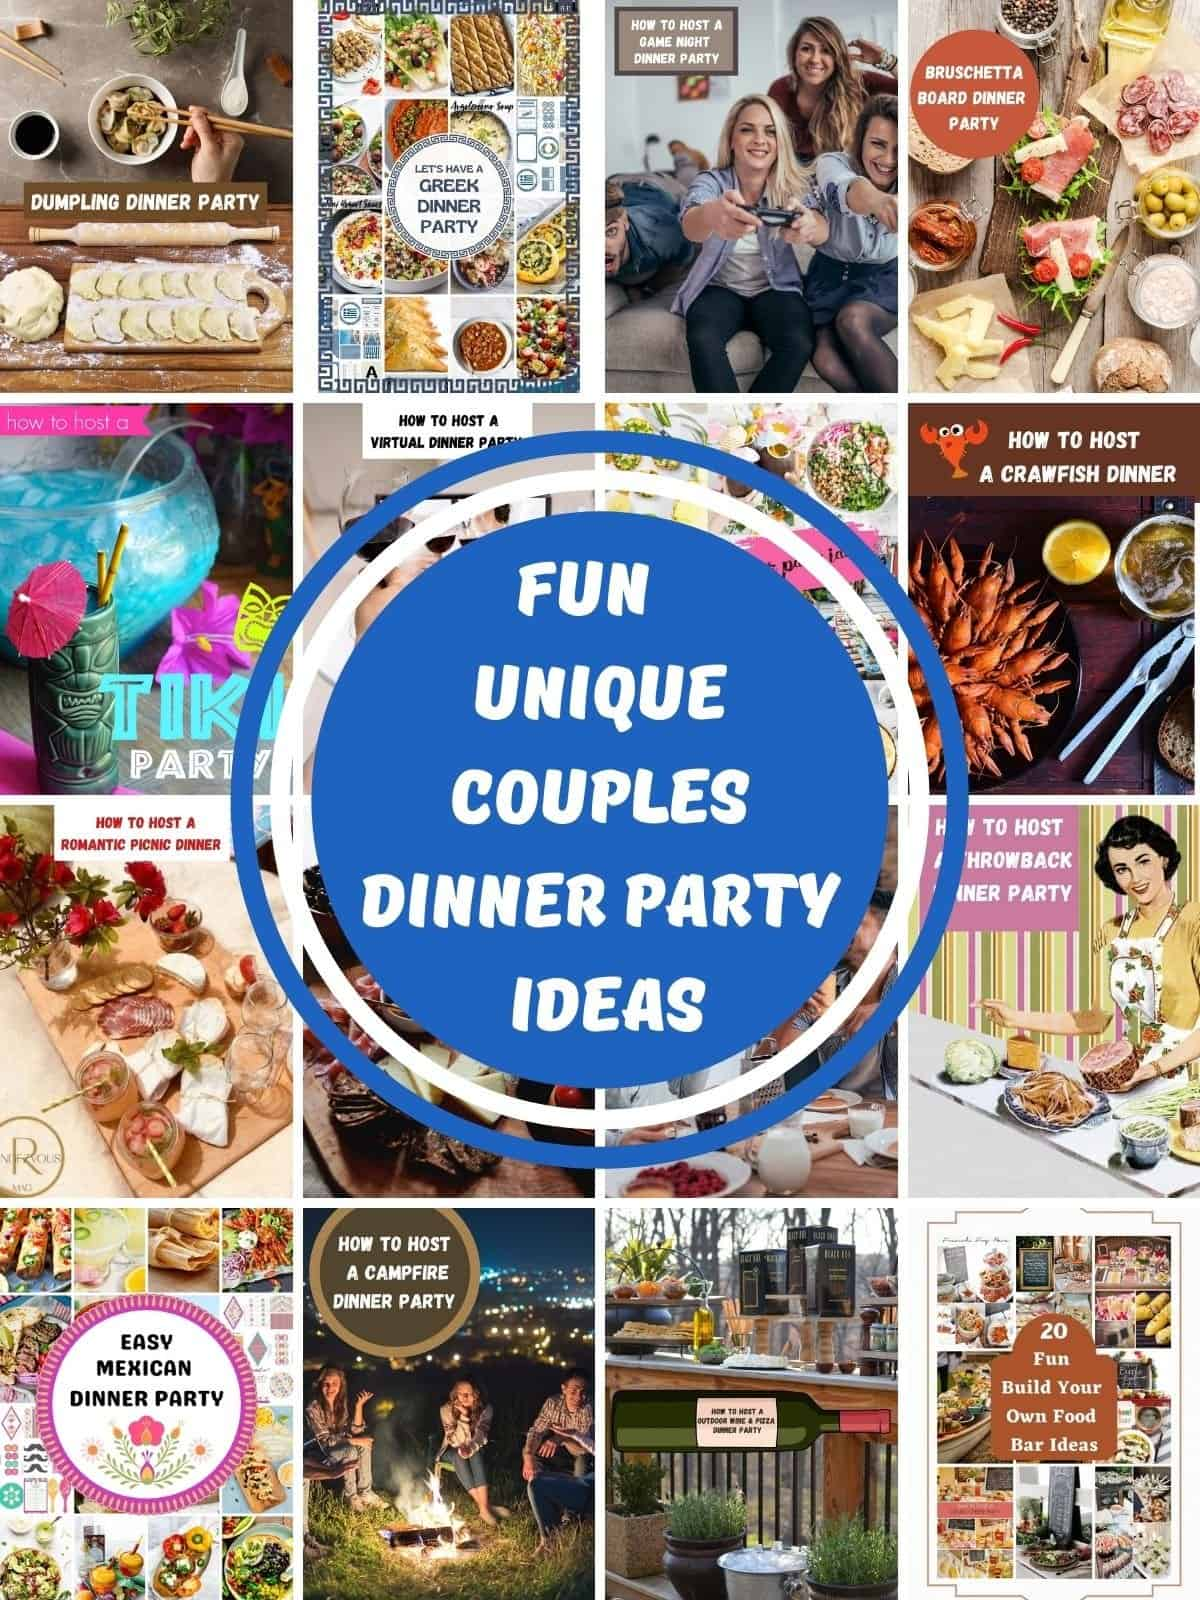 pictures of Fun & Unique Couples Dinner Party Ideas & Themes